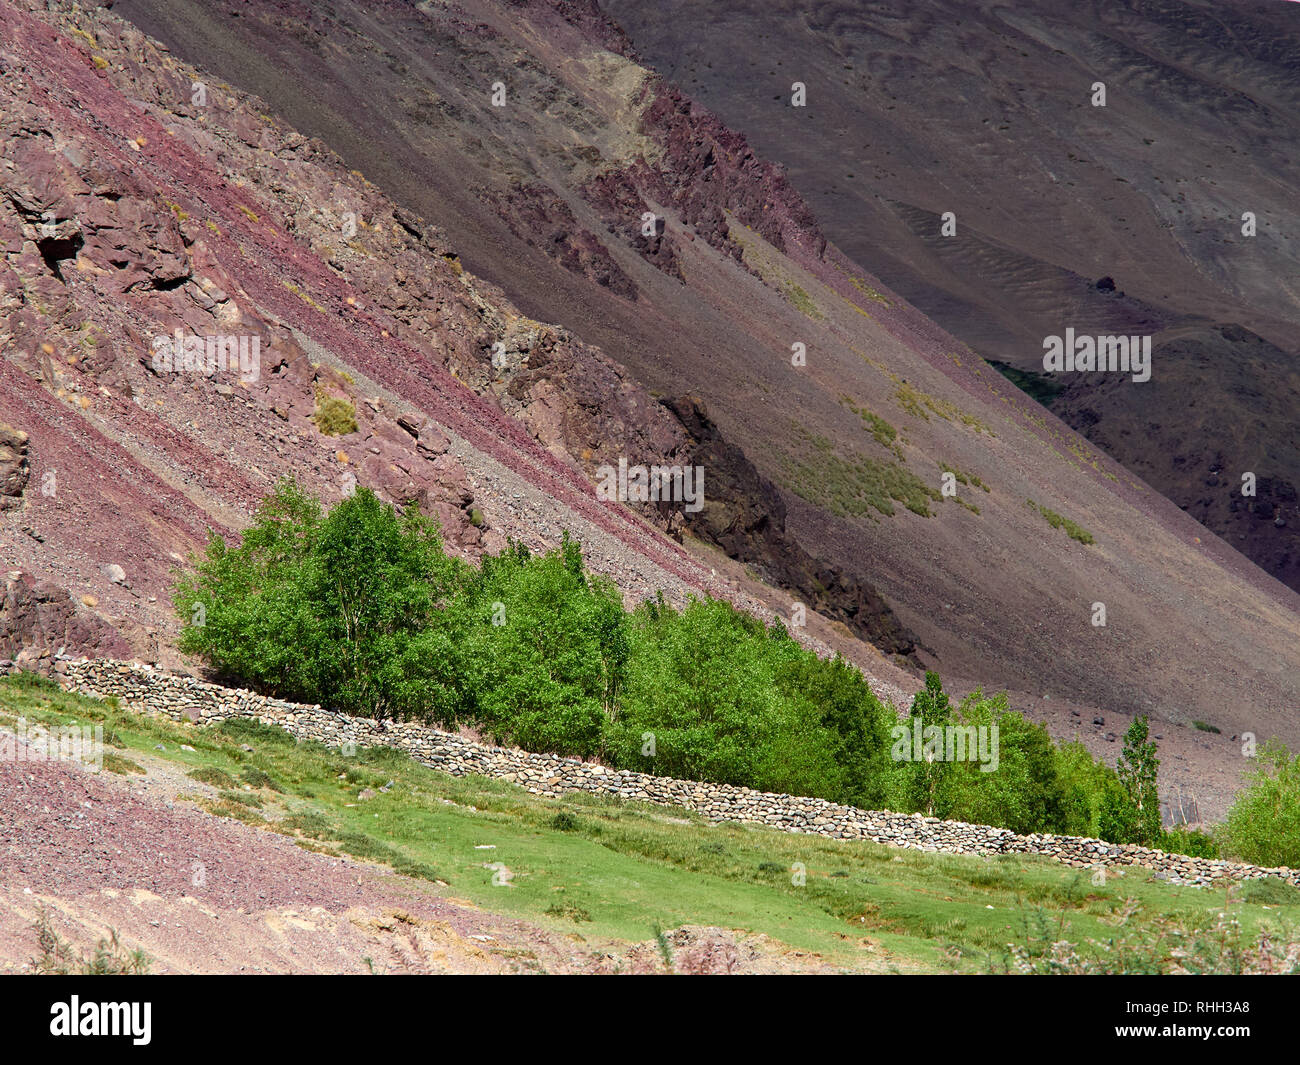 Green bushes on the background of the red slope of the rocks, green on red. Stock Photo